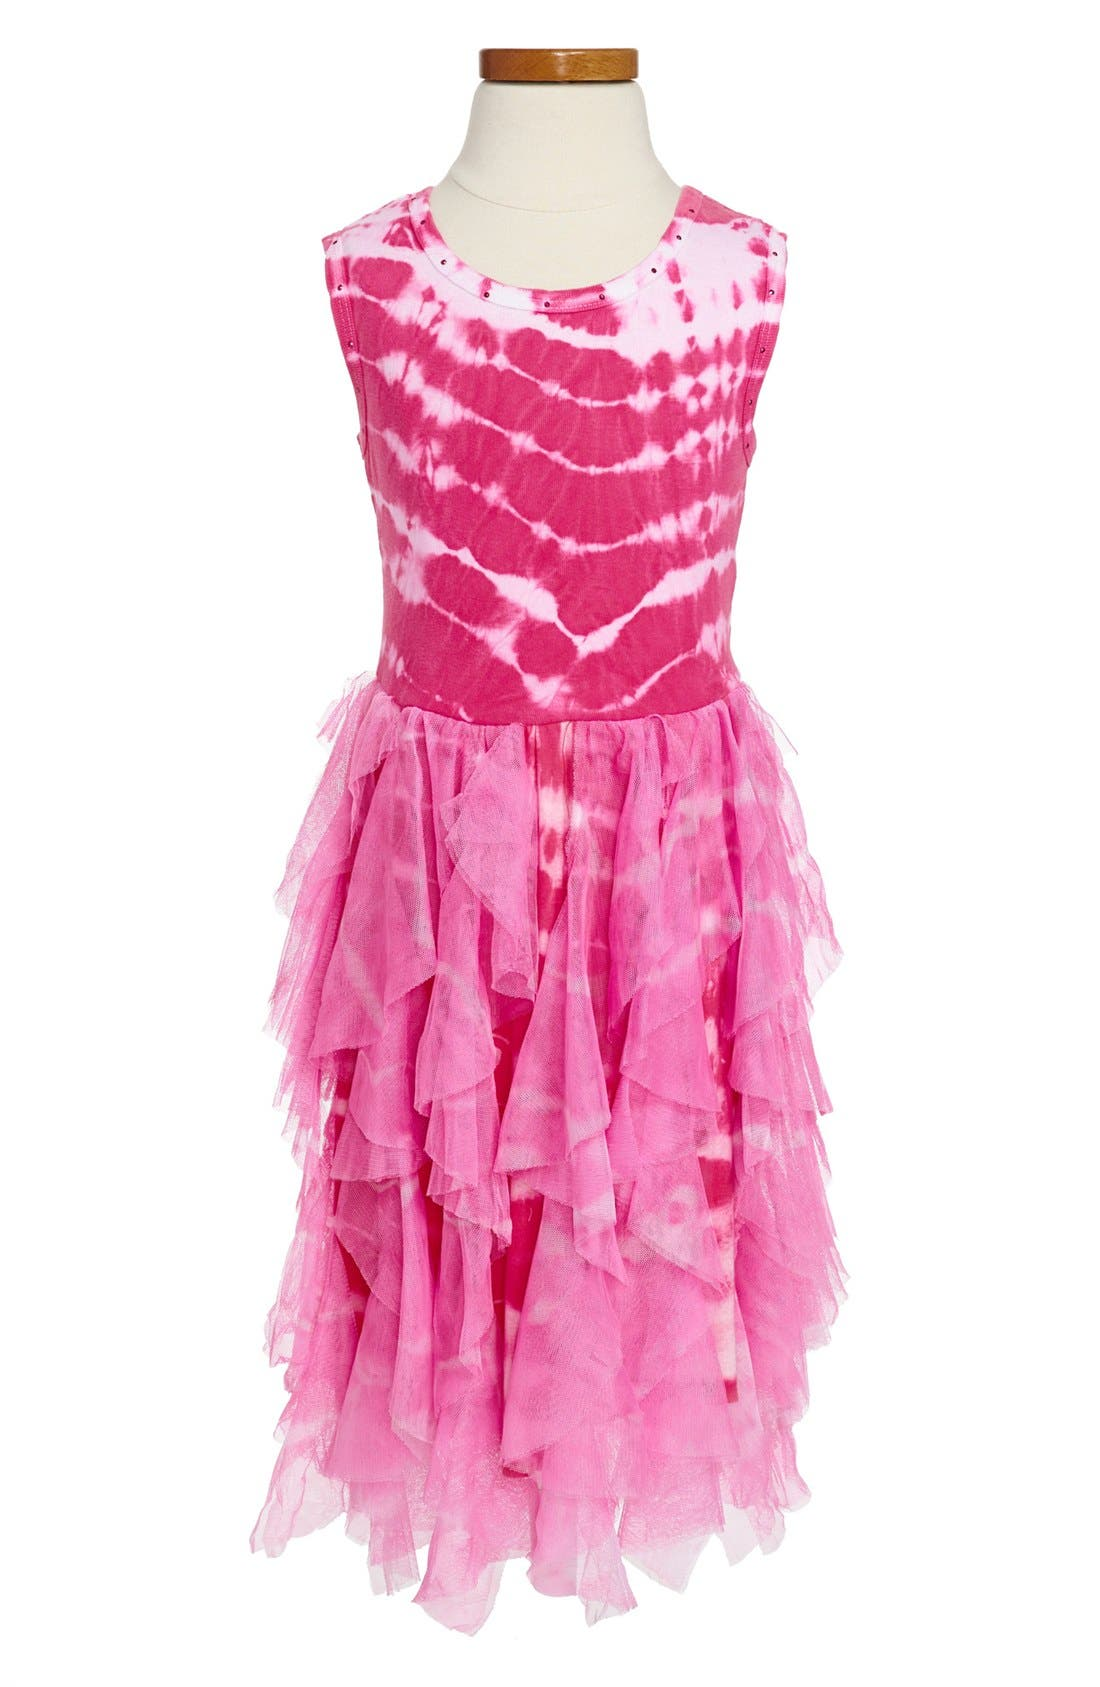 Alternate Image 1 Selected - Mignone Tie Dye Dress (Little Girls & Big Girls)